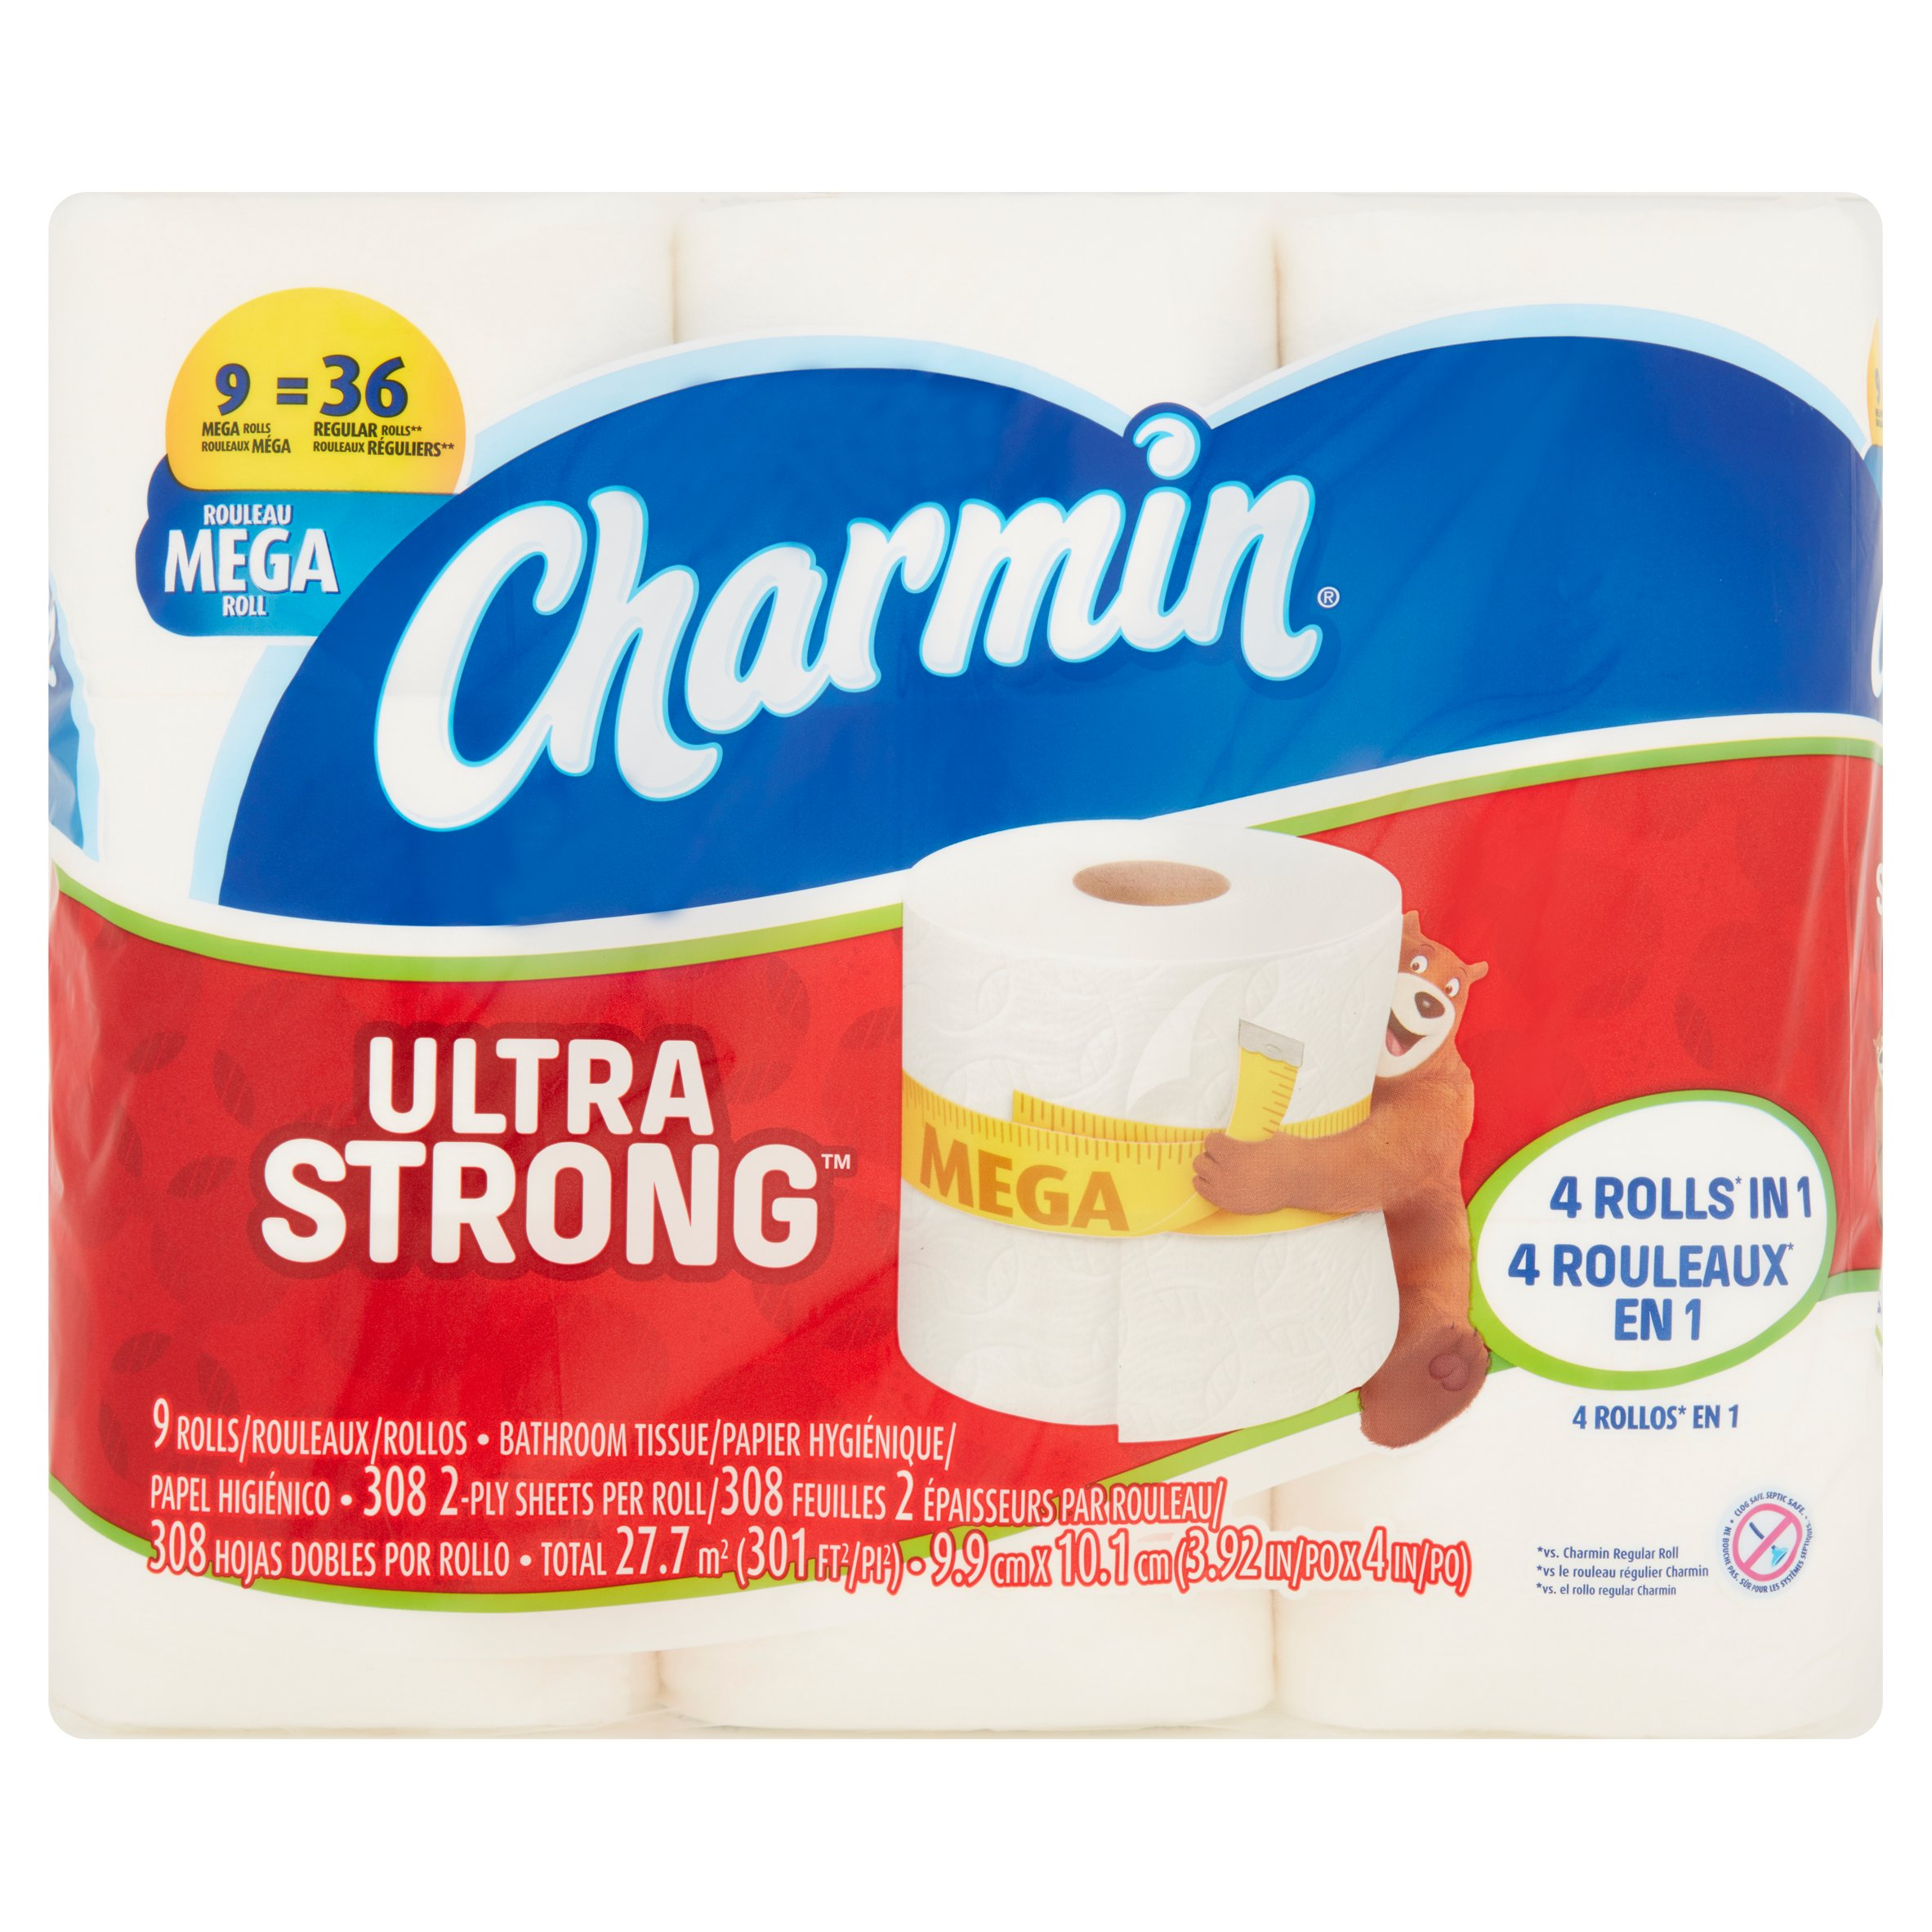 Charmin Ultra Strong Toilet Paper 9 Mega Rolls by Hoberg